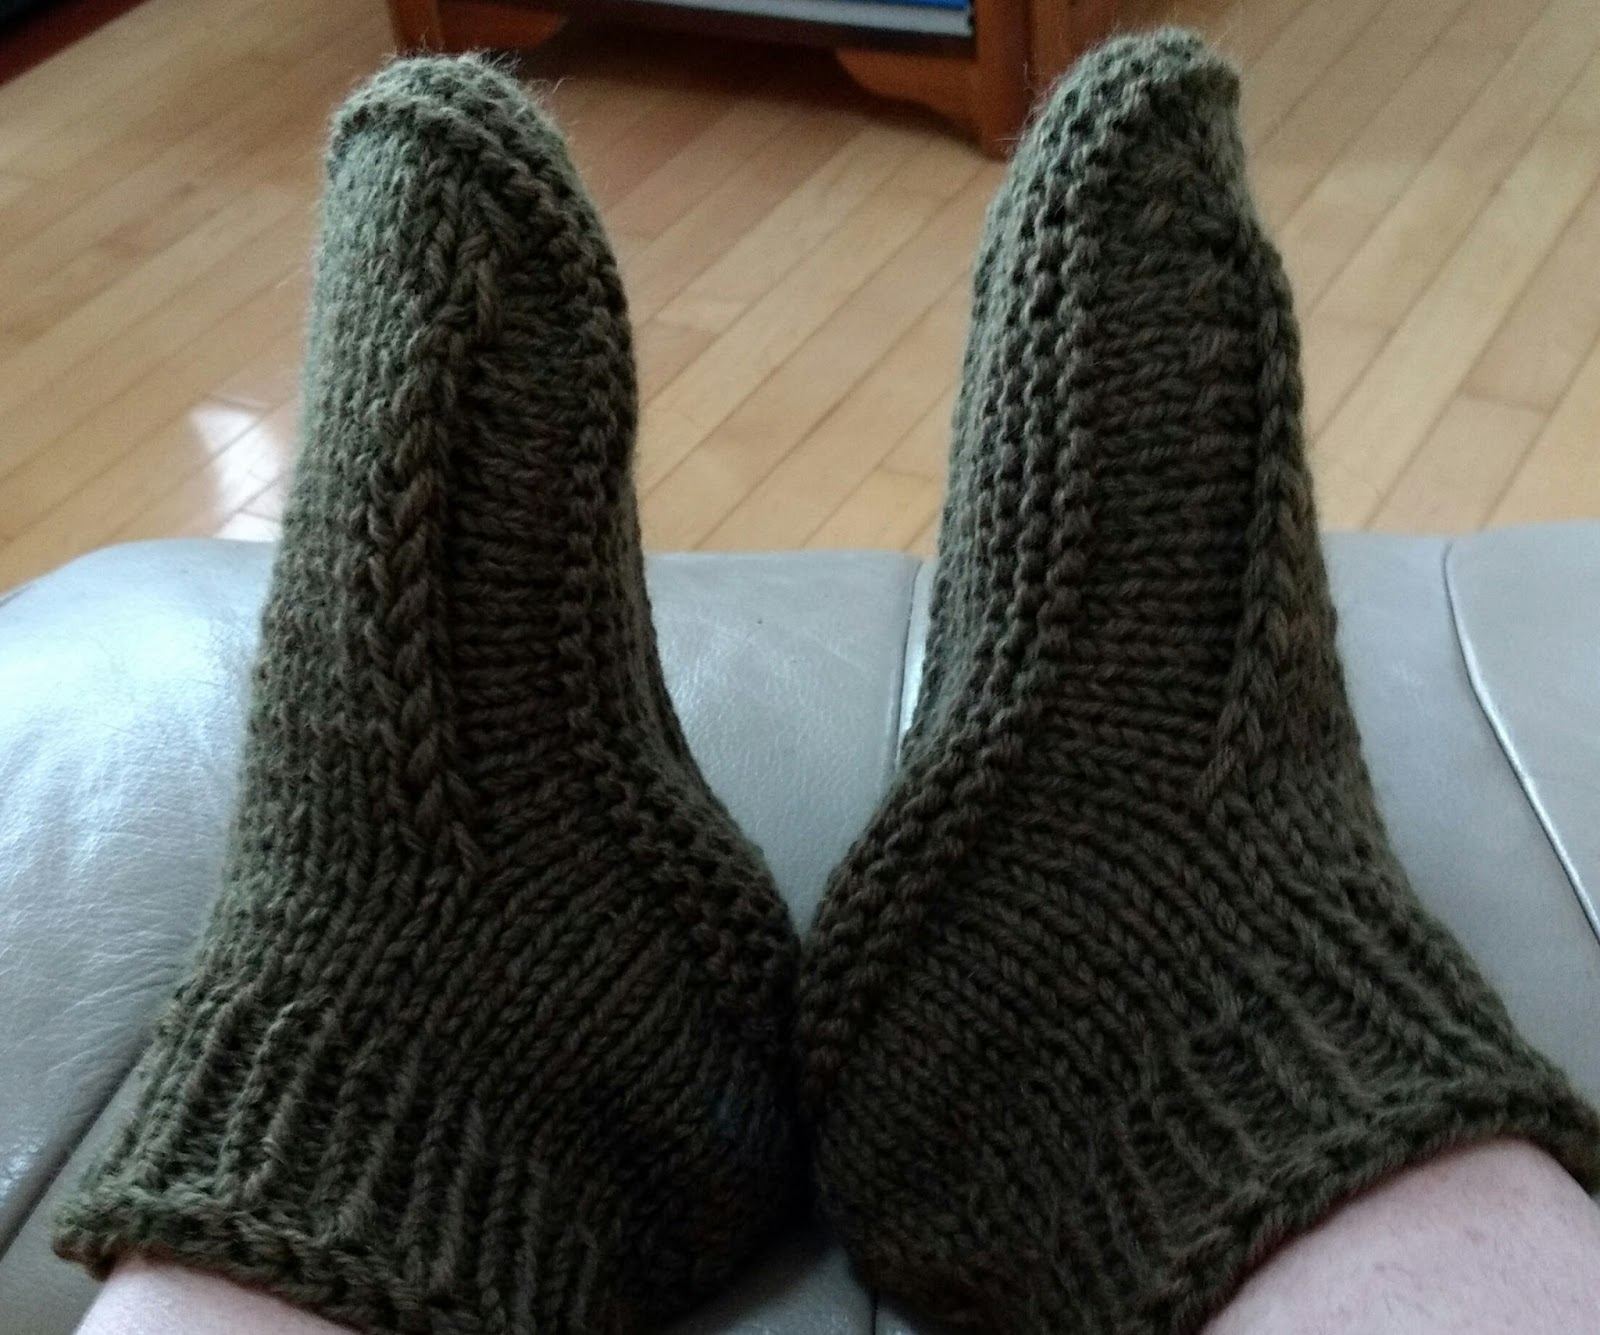 Knit Boots Pattern : Kriskrafter: Better Dorm Boots for MEN! - Free Knitting ...